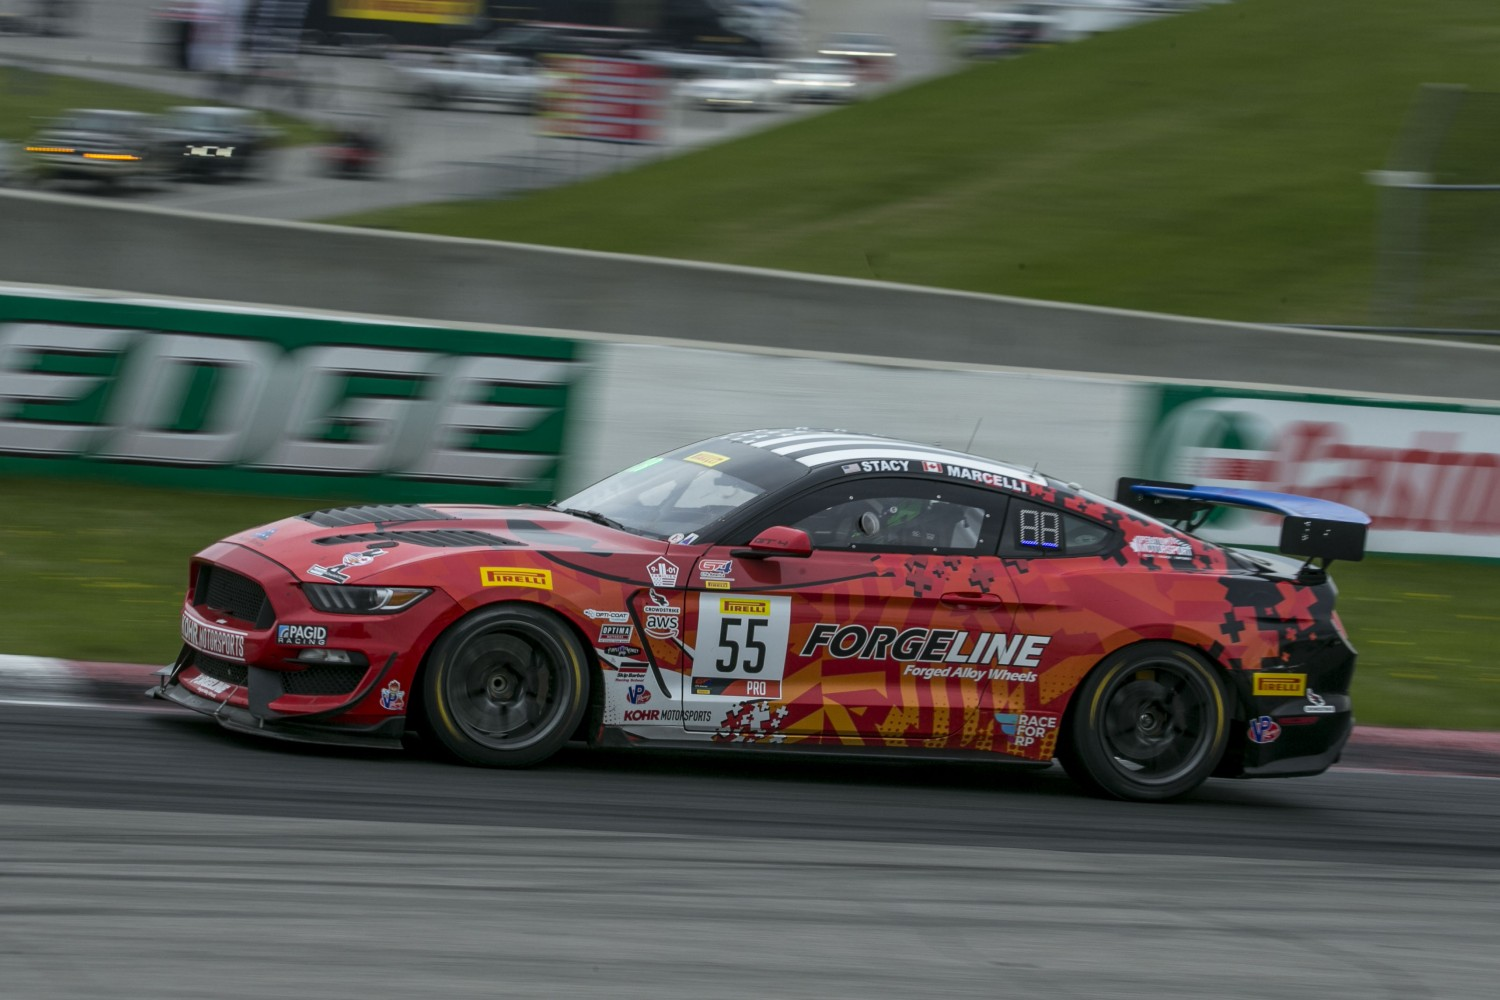 #55 Ford Mustang GT4 of Nate Stacy, Castrol Victoria Day SpeedFest Weekend, Clarington ON  | Brian Cleary/SRO